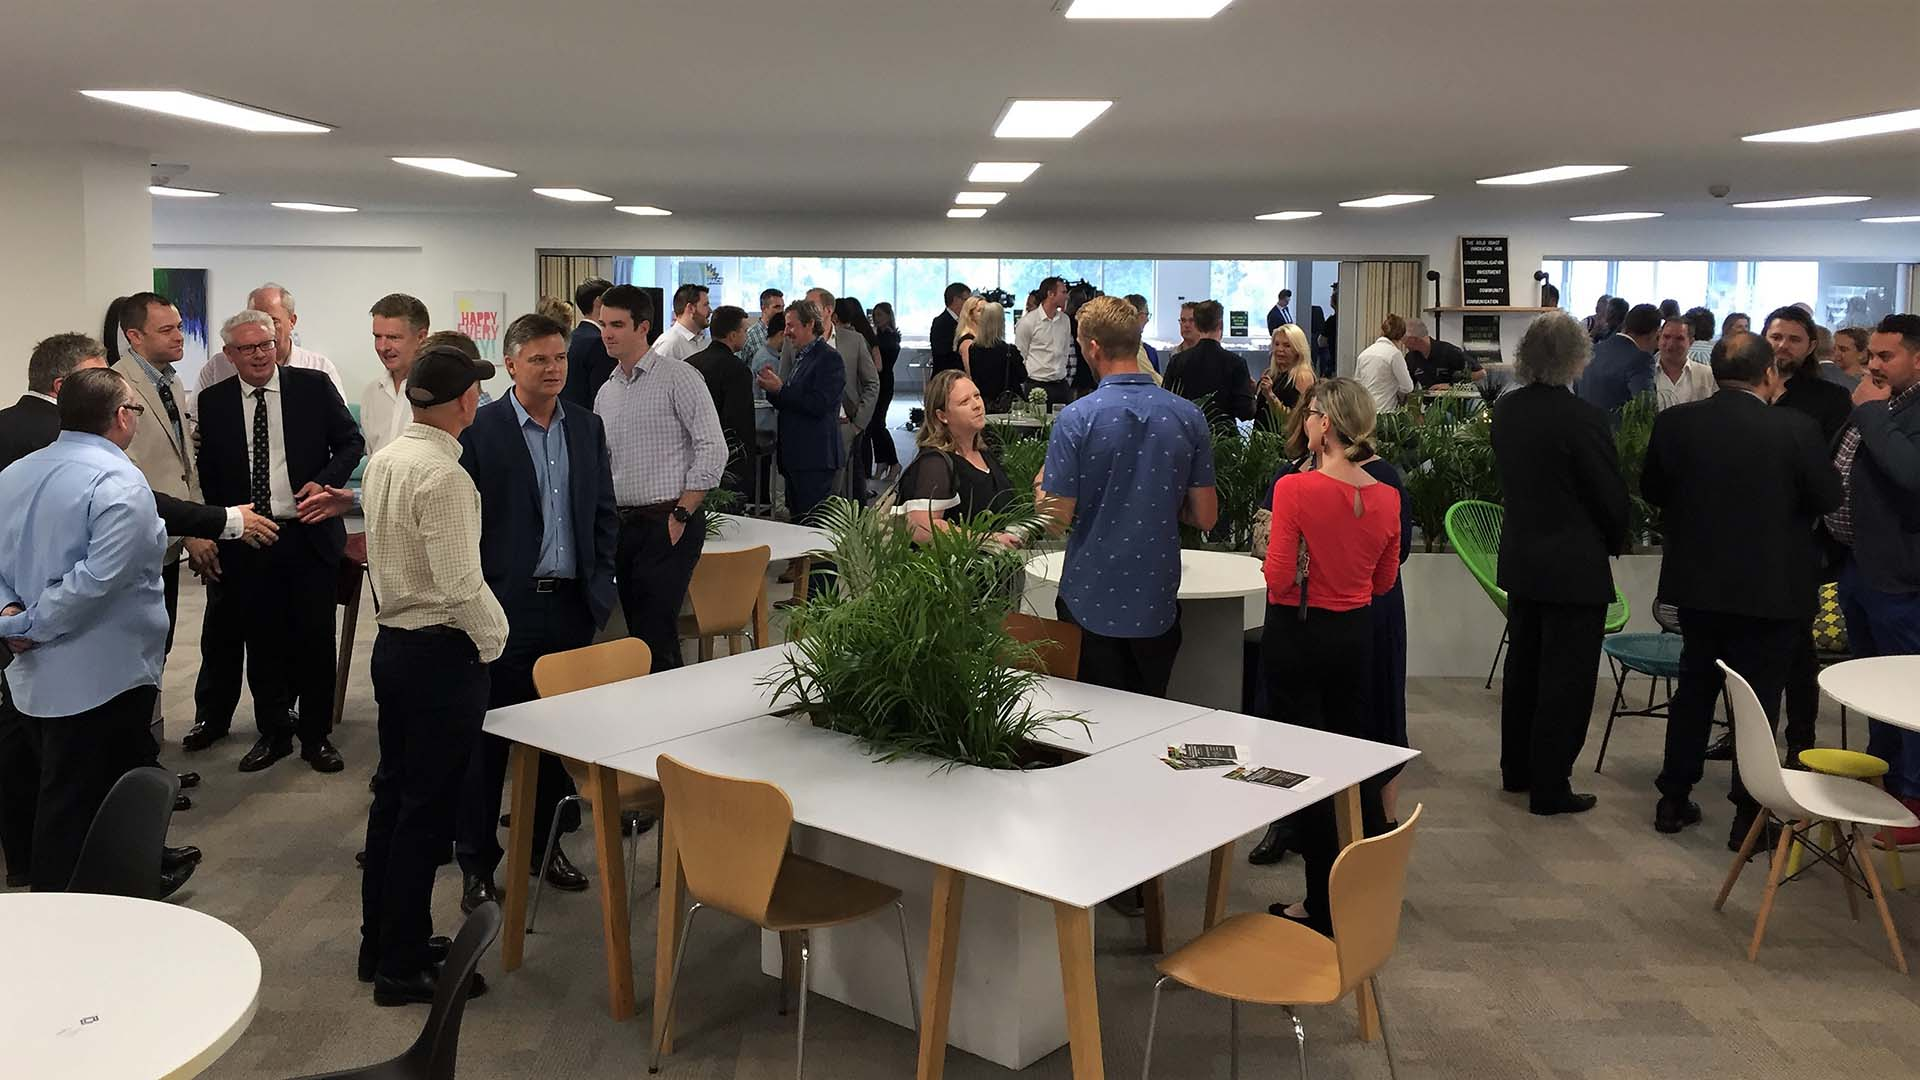 Veracity Joins the Gold Coast Community